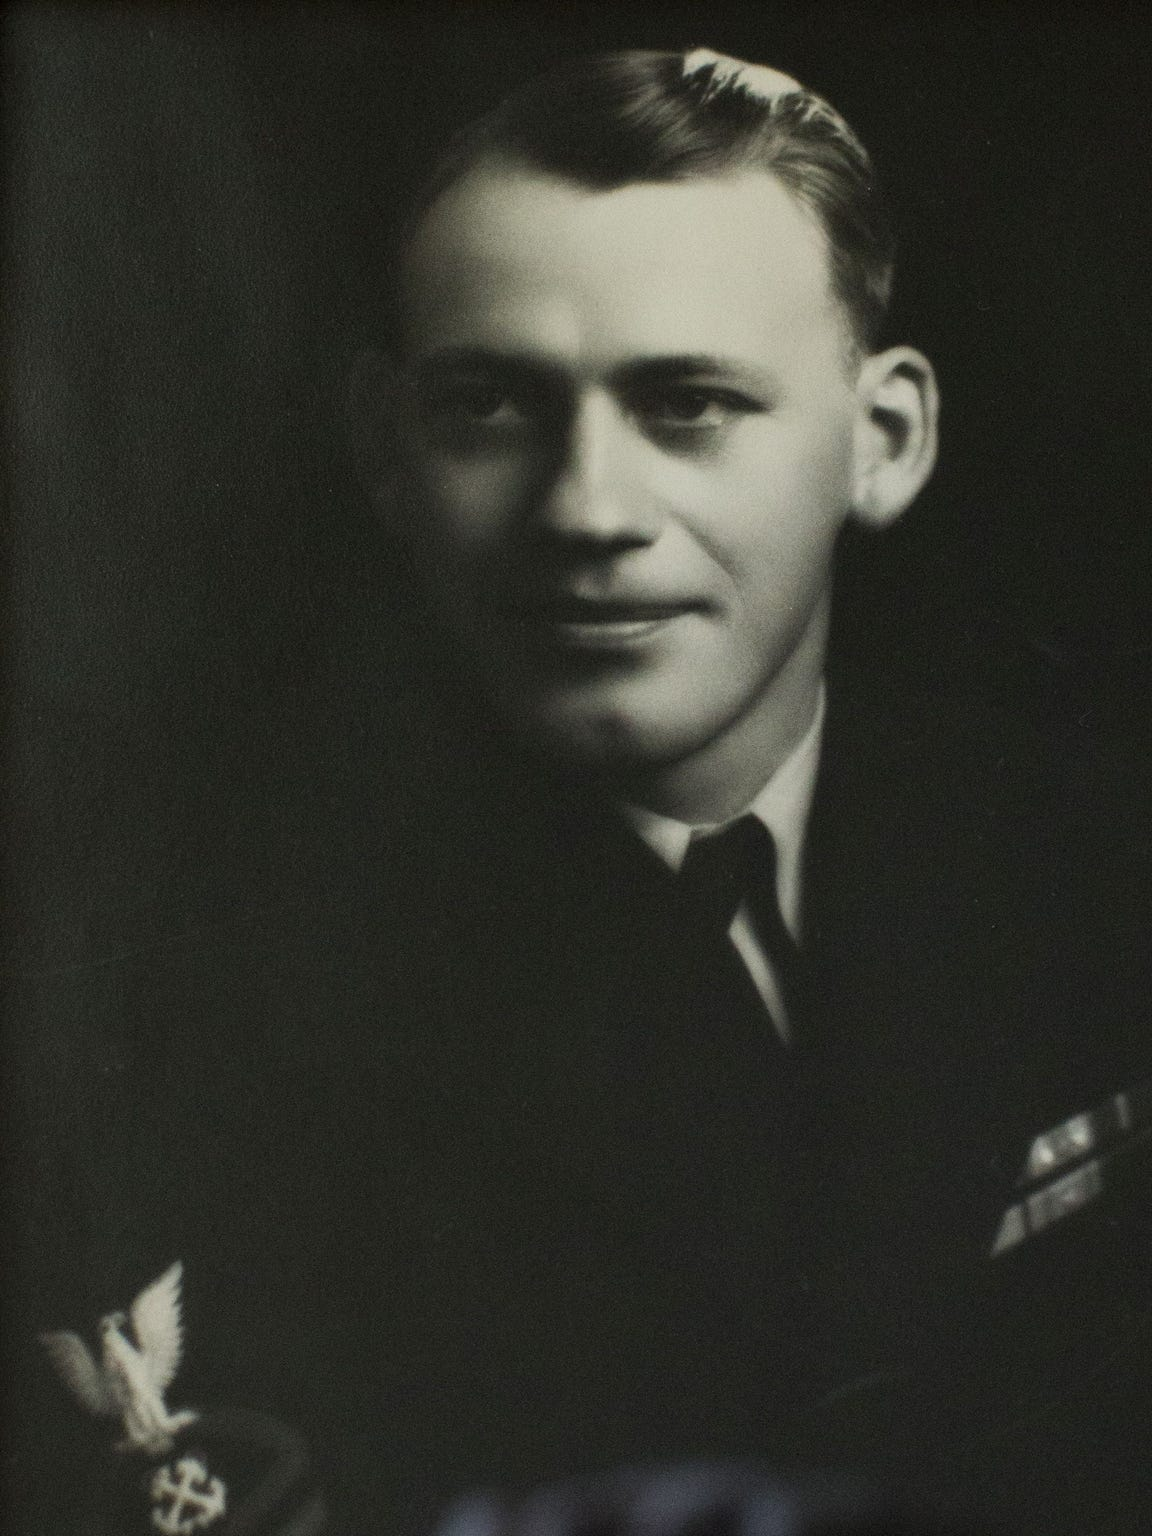 After Pearl Harbor and the war, Anderson served as